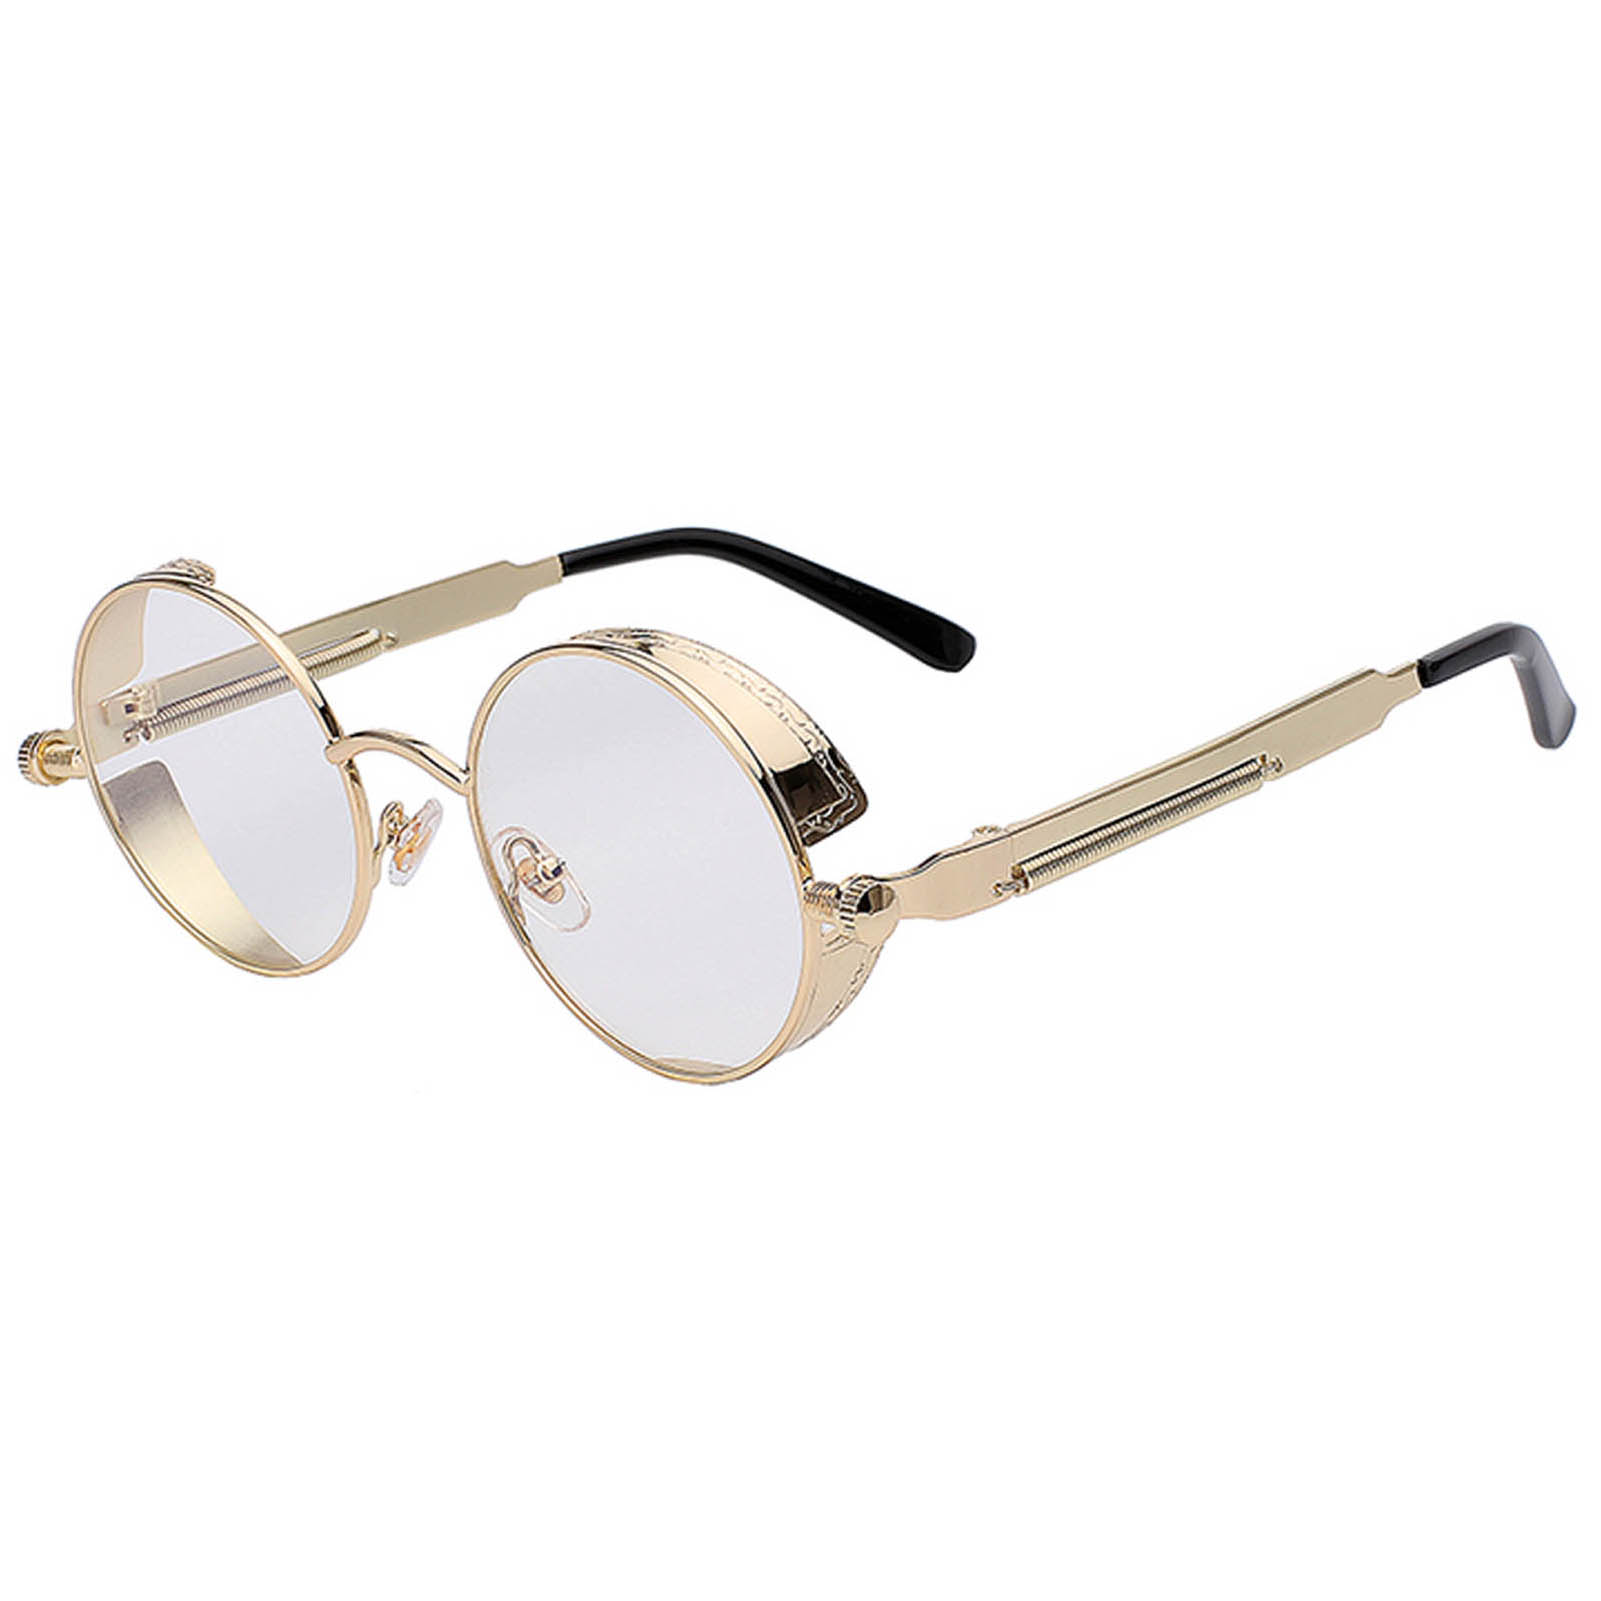 OWL ® Steampunk C8 Gothic Eyewear Sunglasses Women's Men's Metal Round Circle Gold Frame Clear Lens One Pair